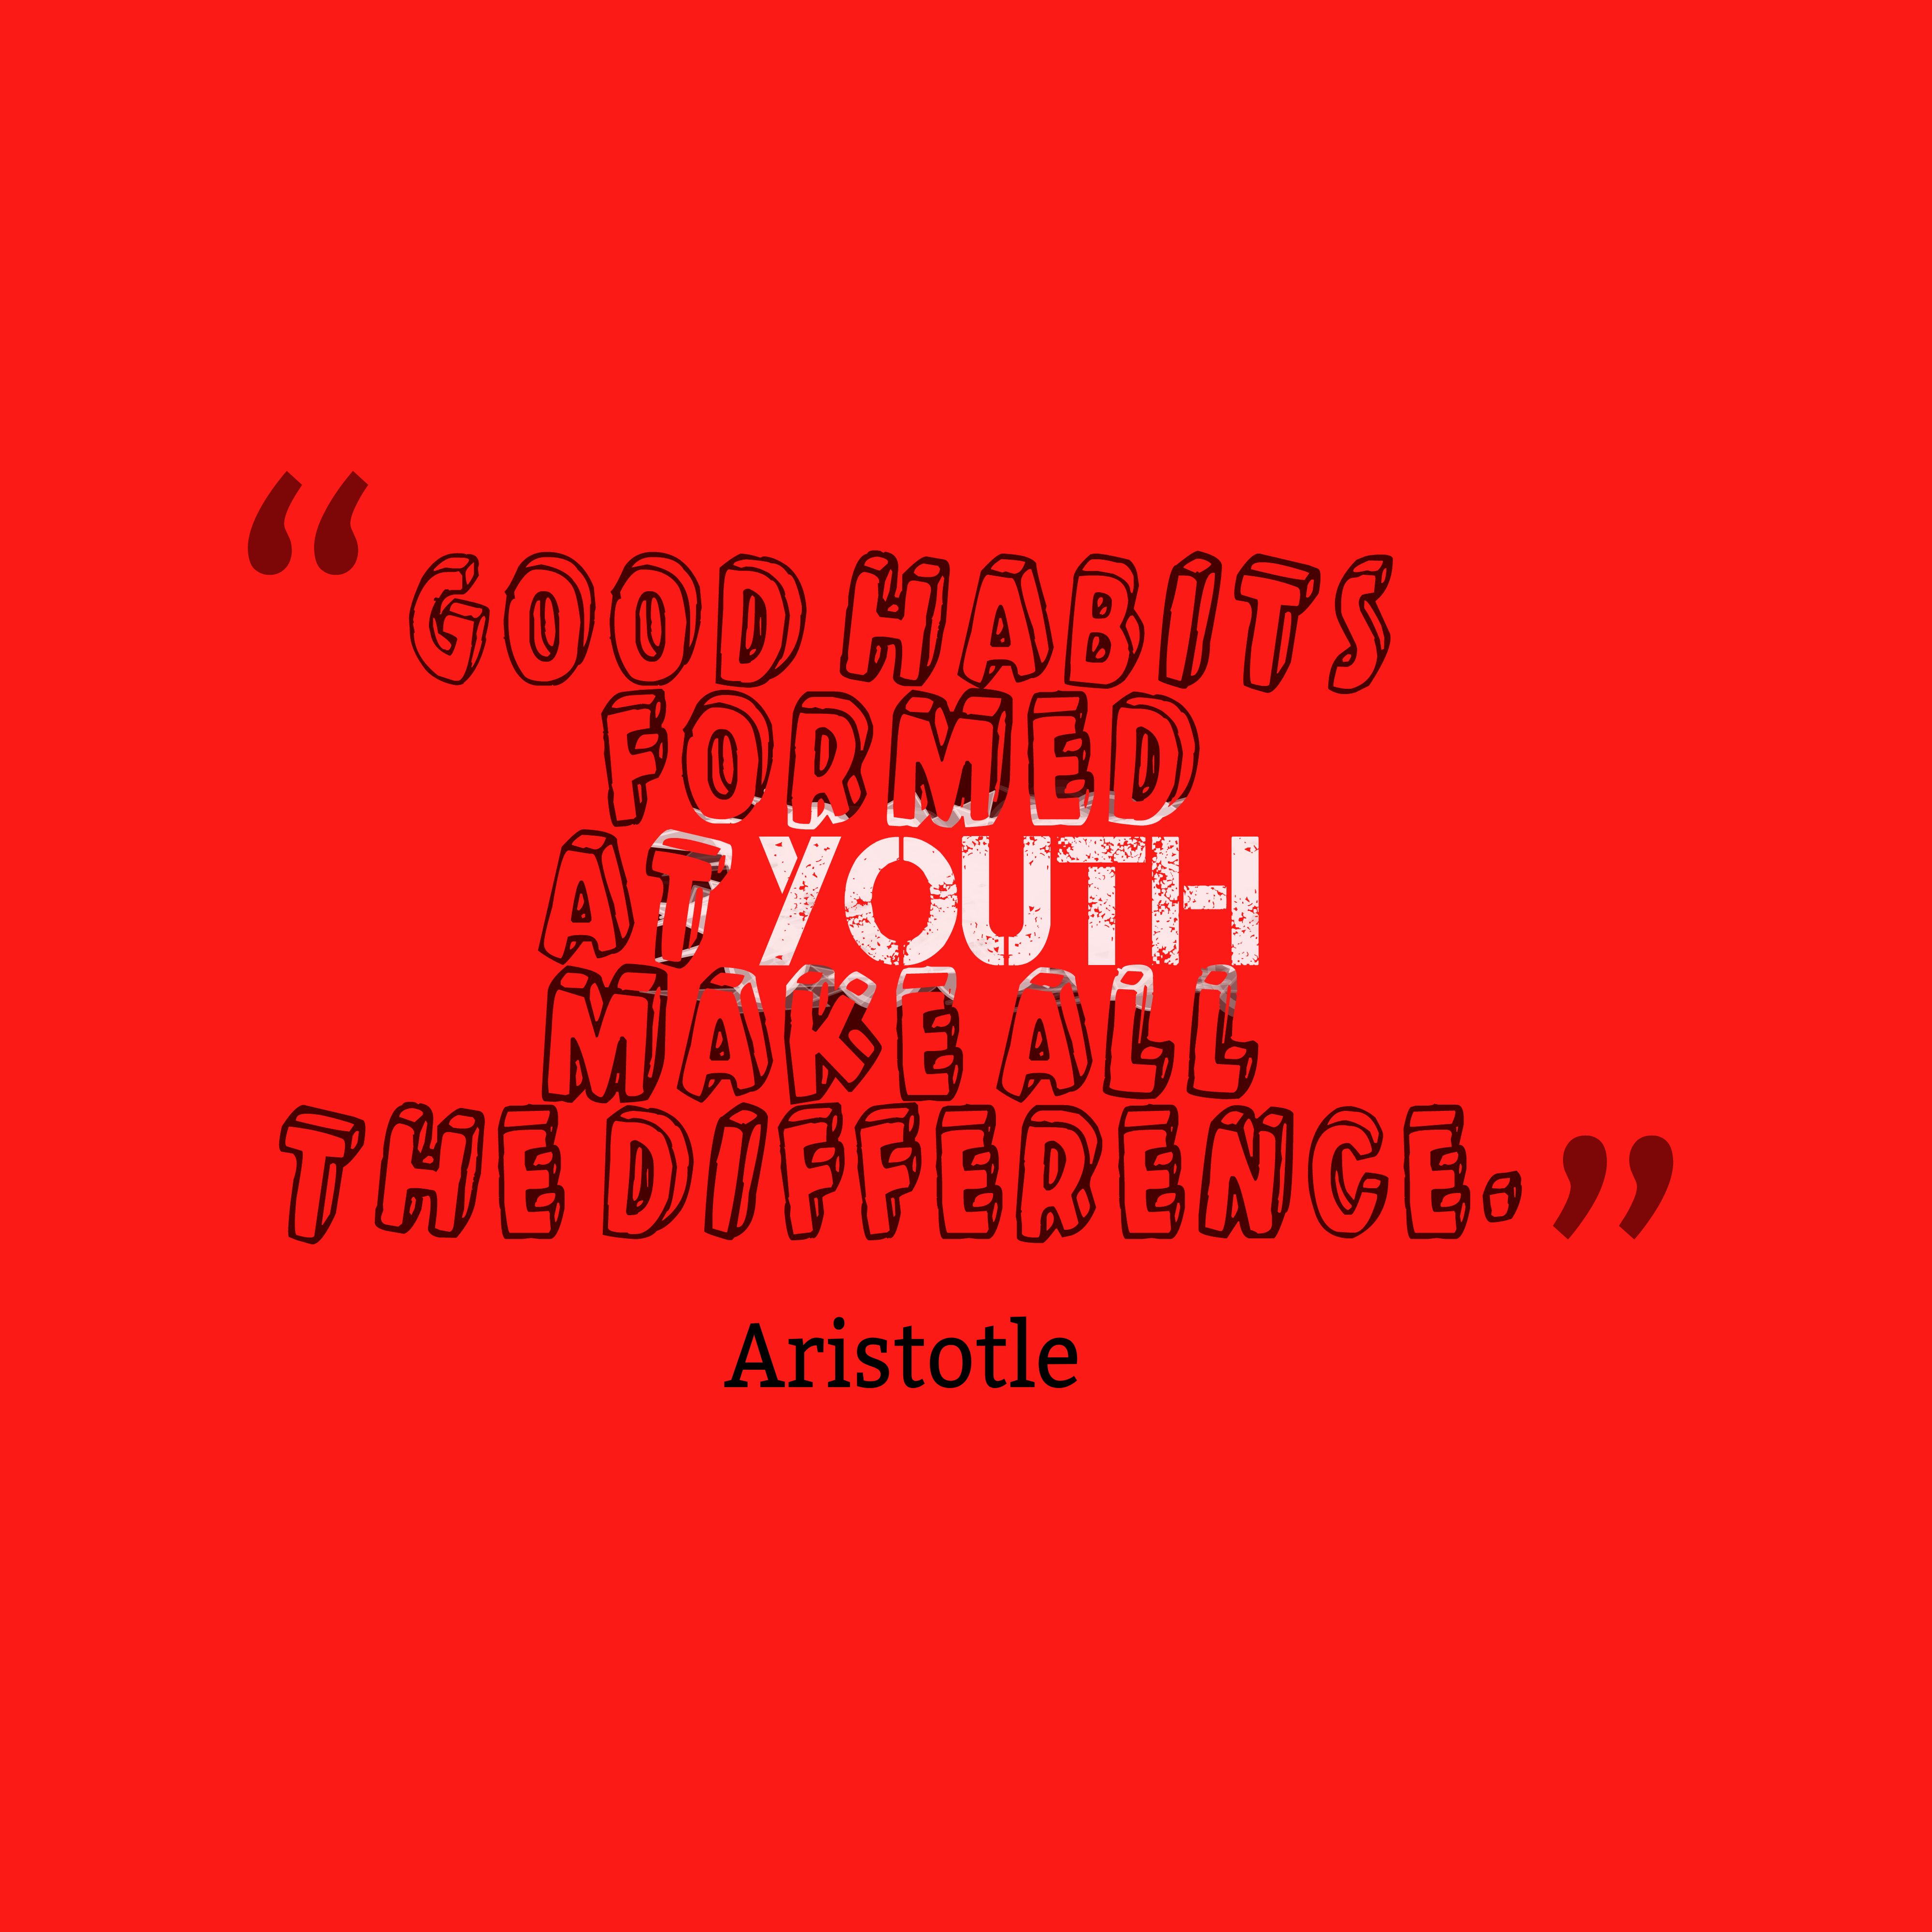 Quotes image of Good habits formed at youth make all the difference.